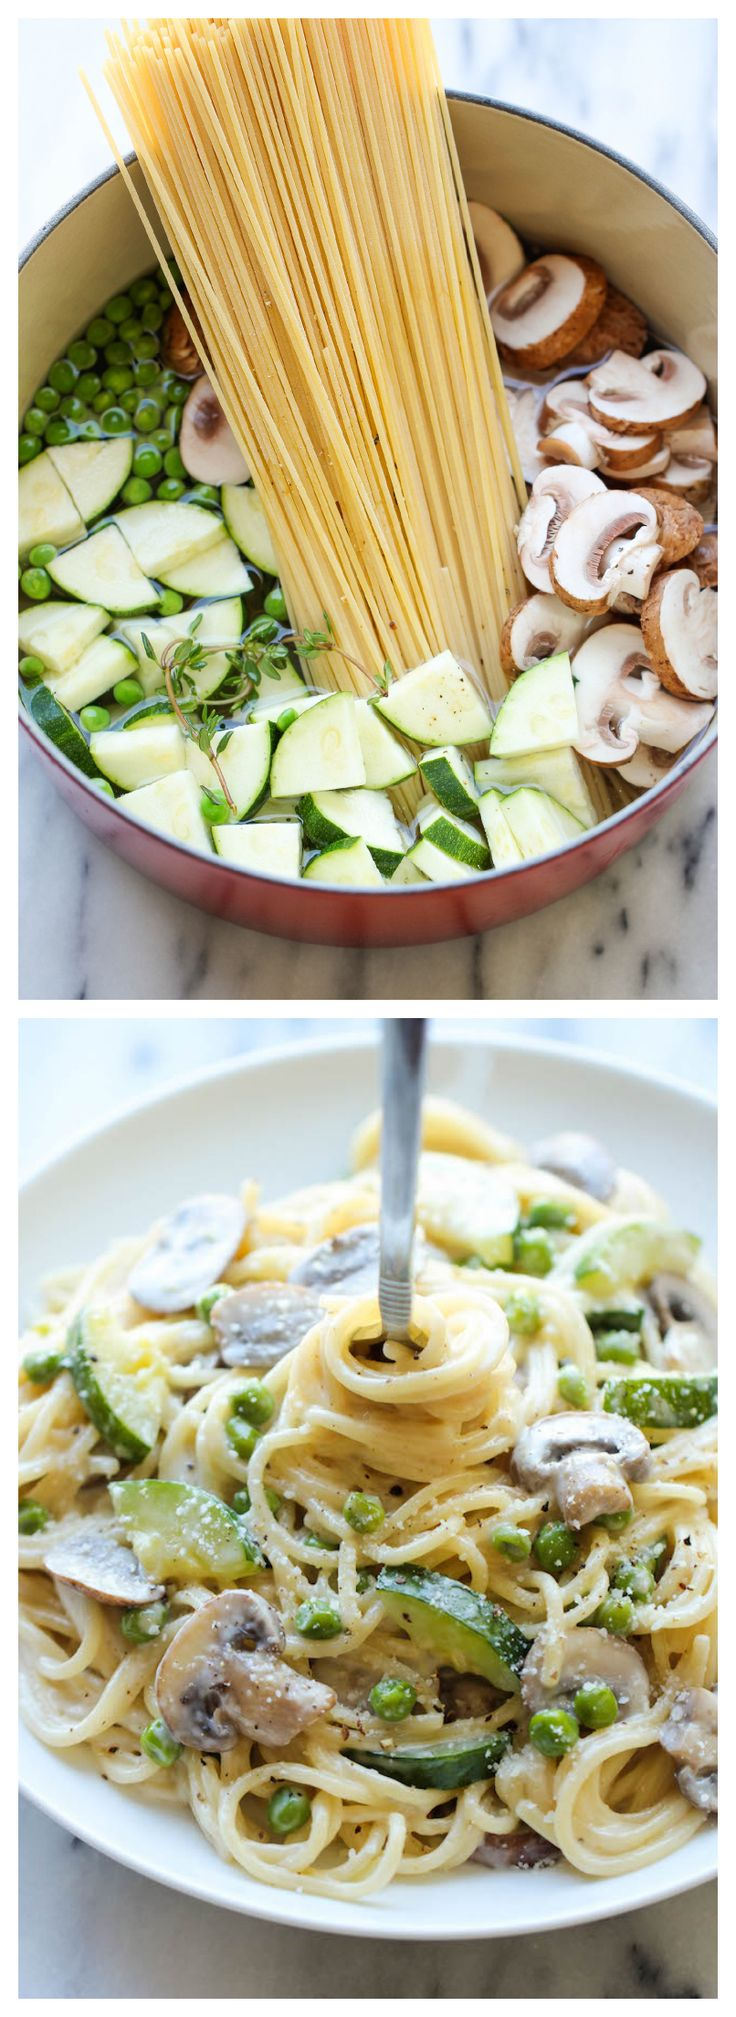 One Pot Zucchini Mushroom Pasta. Just looking at this makes you hungry!